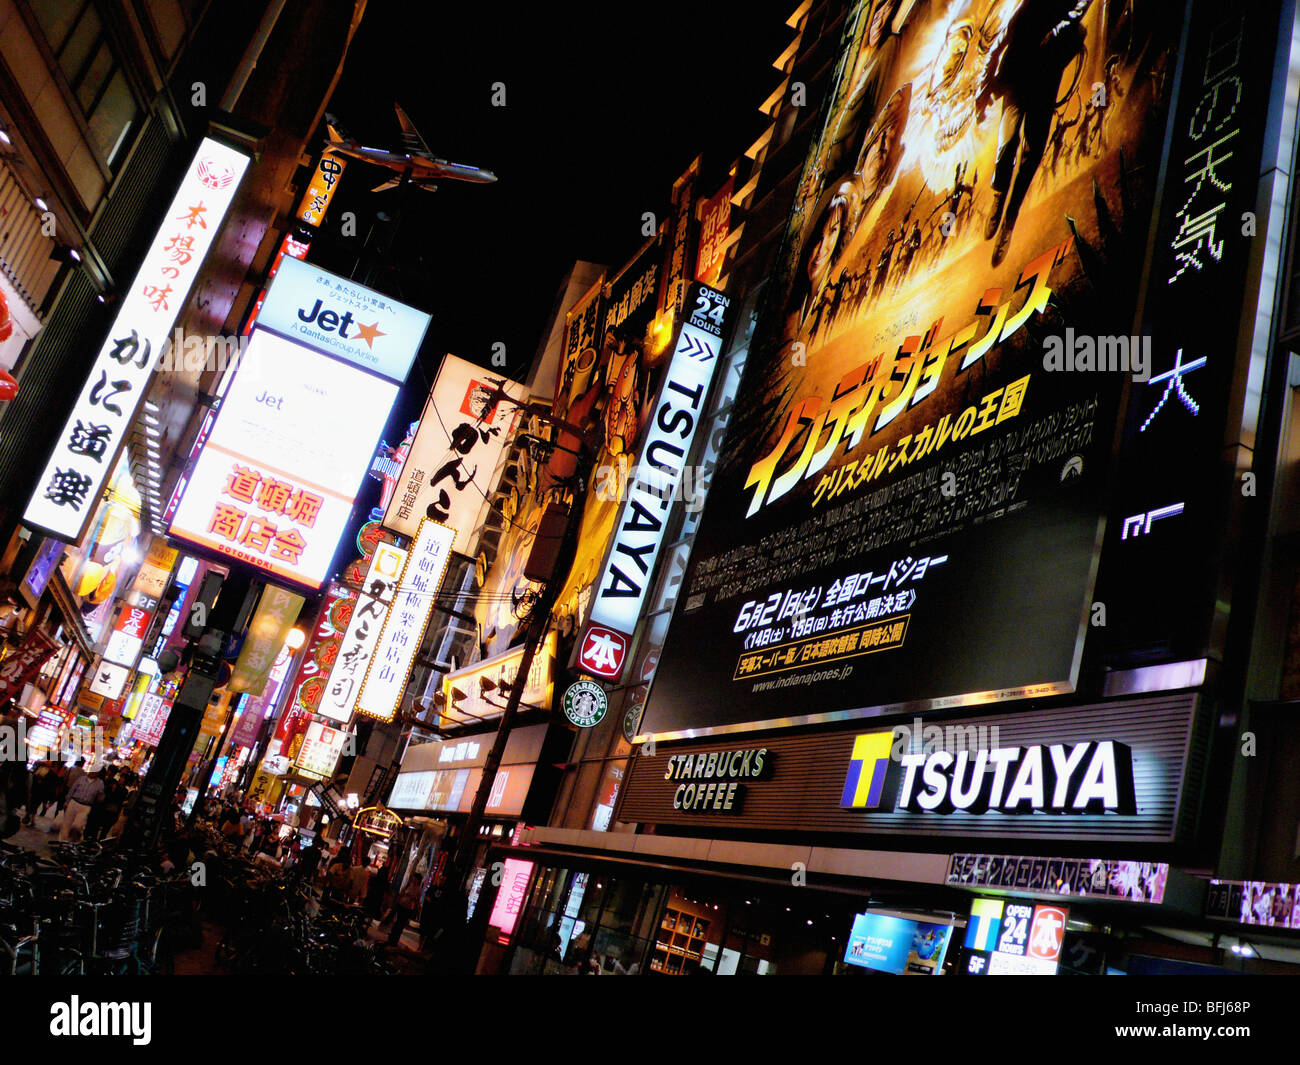 Advertising signs in a big city at night, Japan. - Stock Image